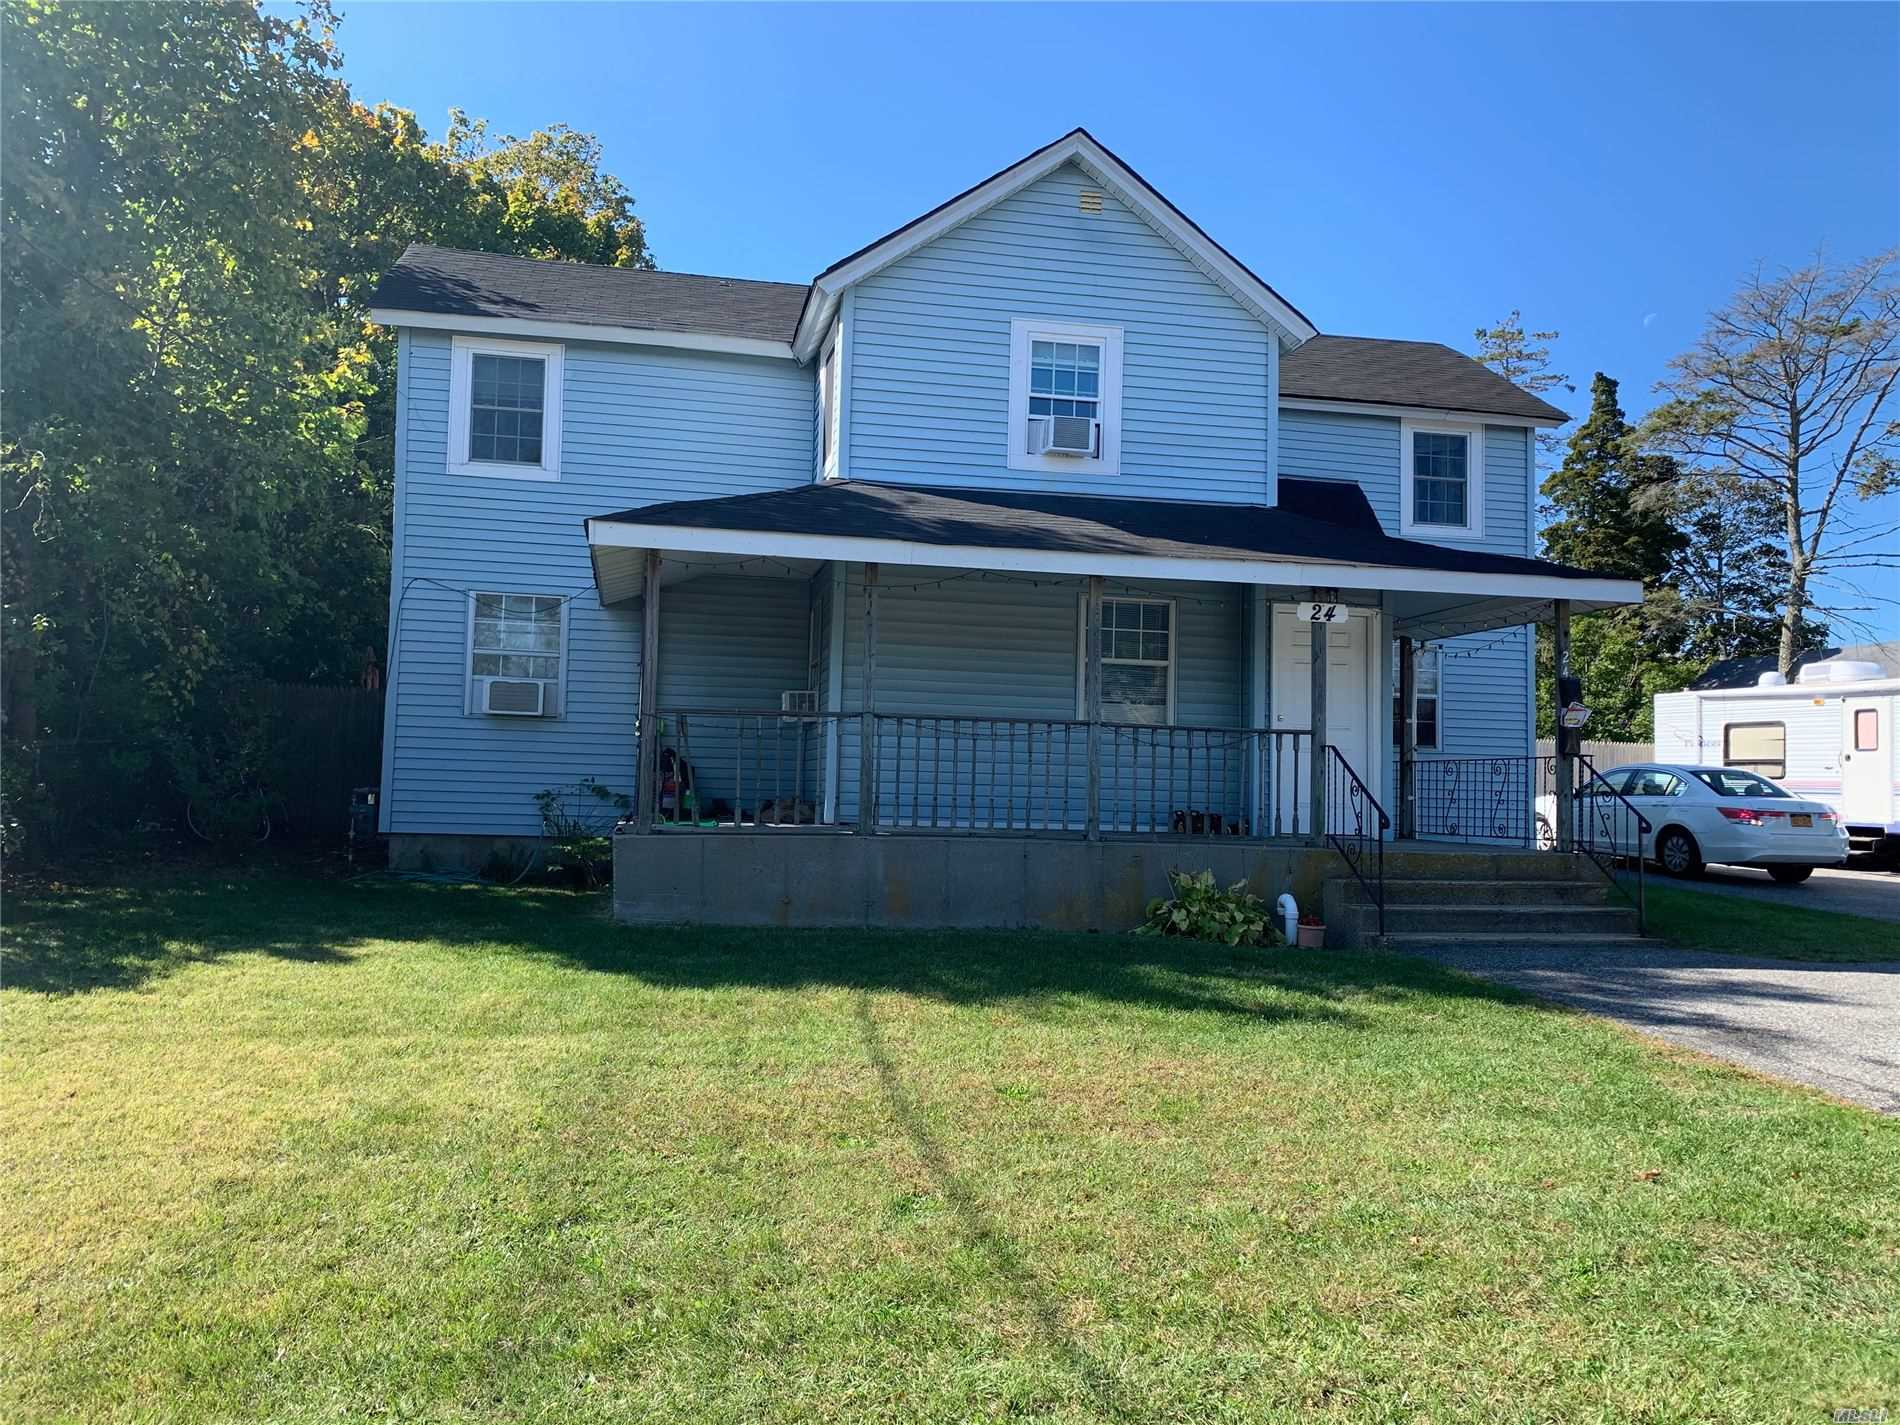 Property for sale at 24 Lakeview Avenue, Bay Shore NY 11706, Bay Shore,  New York 11706